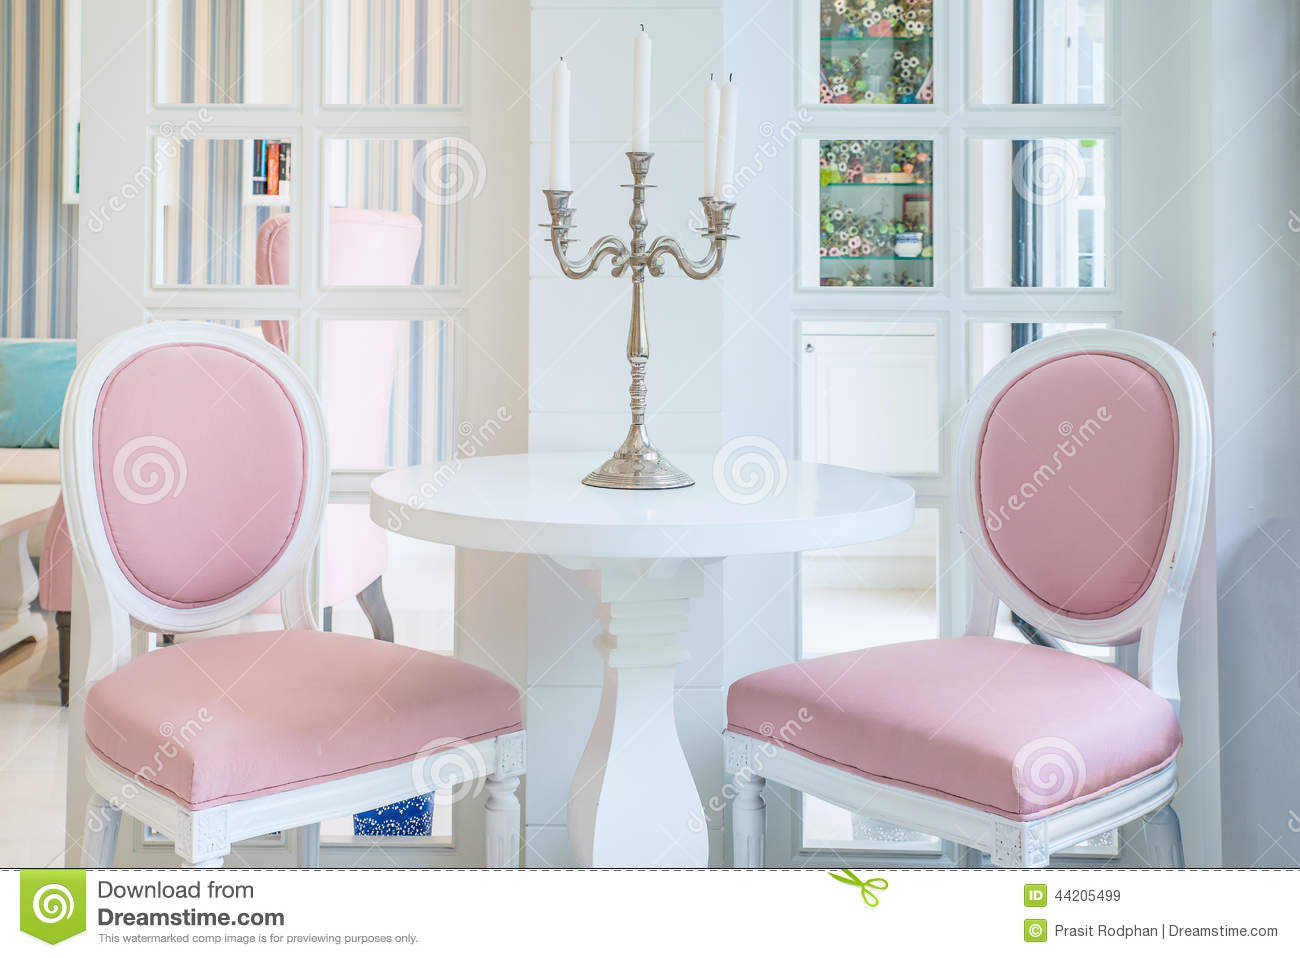 table blanche et chaise rose avec la bougie sur la table dans le salon photo stock image 44205499. Black Bedroom Furniture Sets. Home Design Ideas